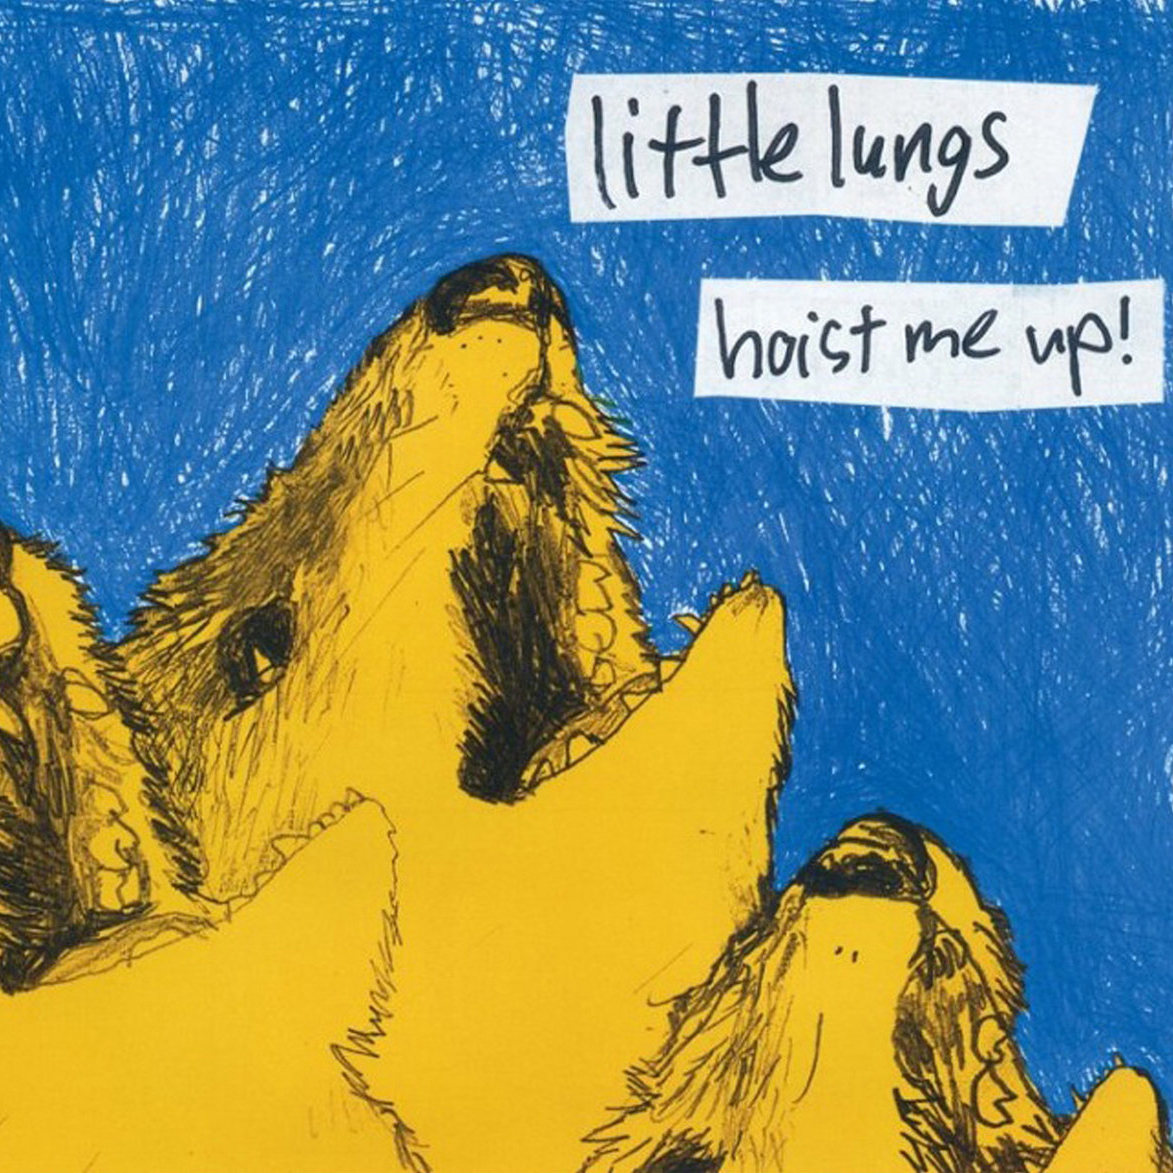 Little Lungs